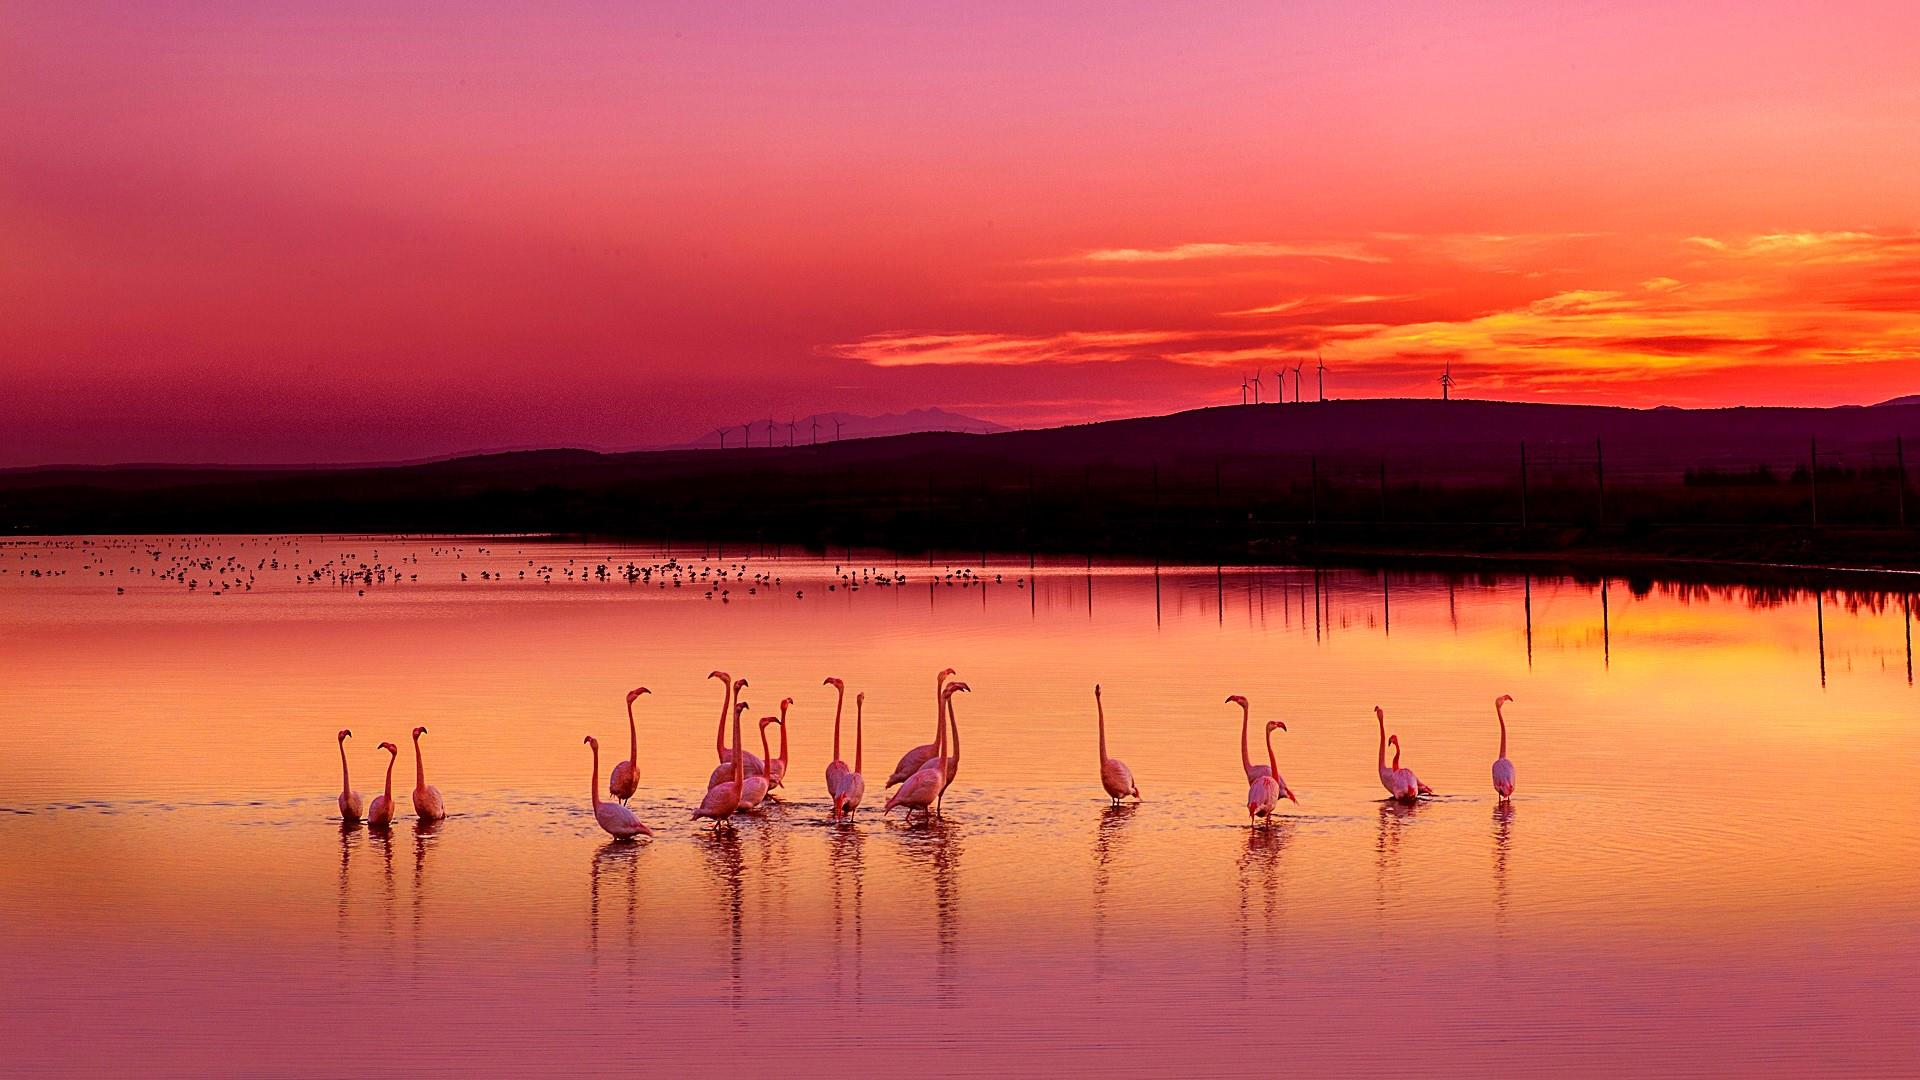 Ultra Hd Car Wallpapers 8k Folder Flamingos In The Sunset At France Hd Wallpaper Backiee